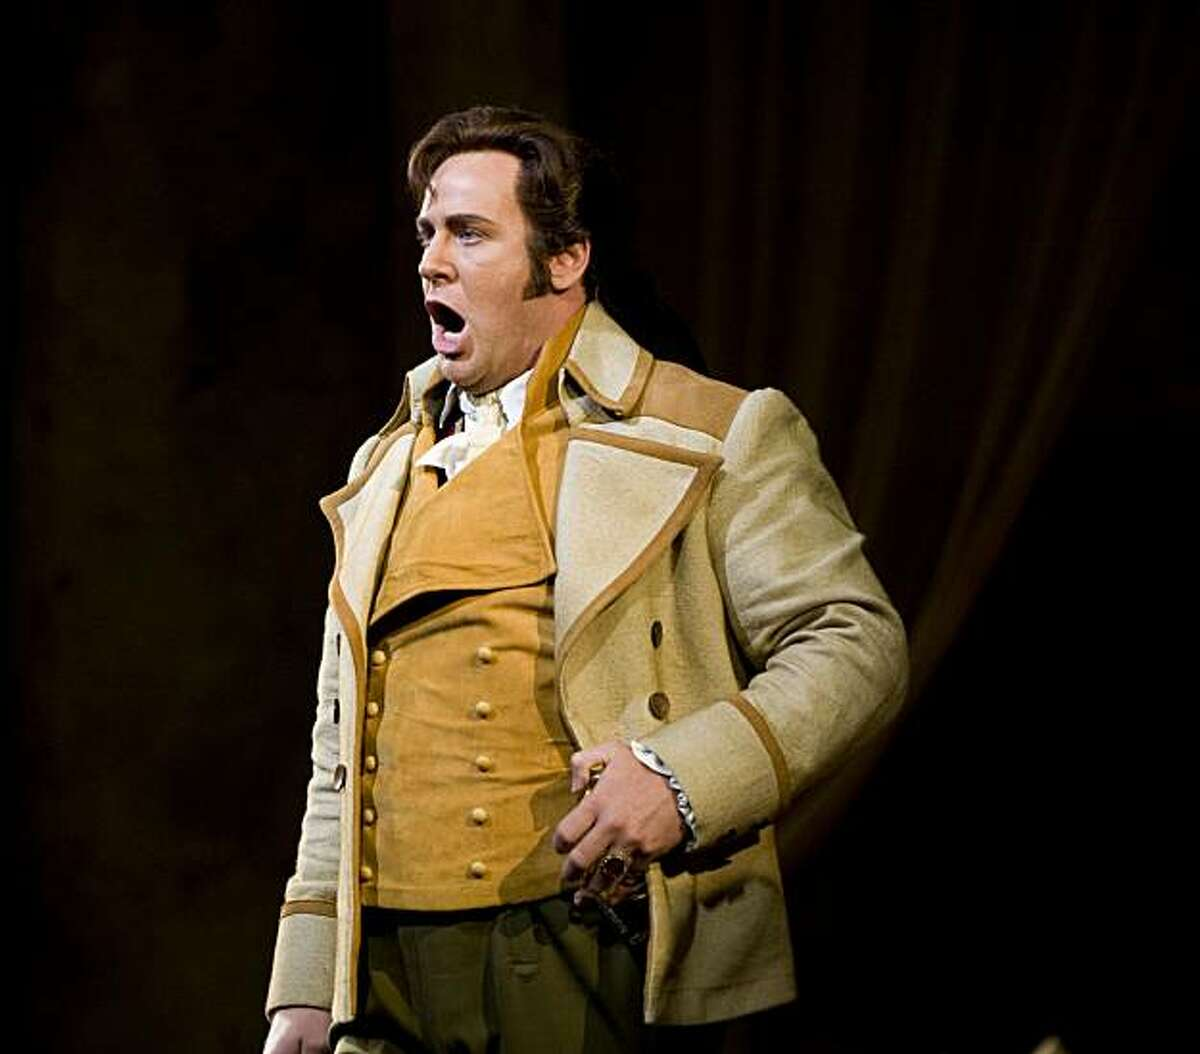 Lucas Meachem, playing Count Almaviva, performs during the San Francisco Opera's final dress rehearsal of Mozart's